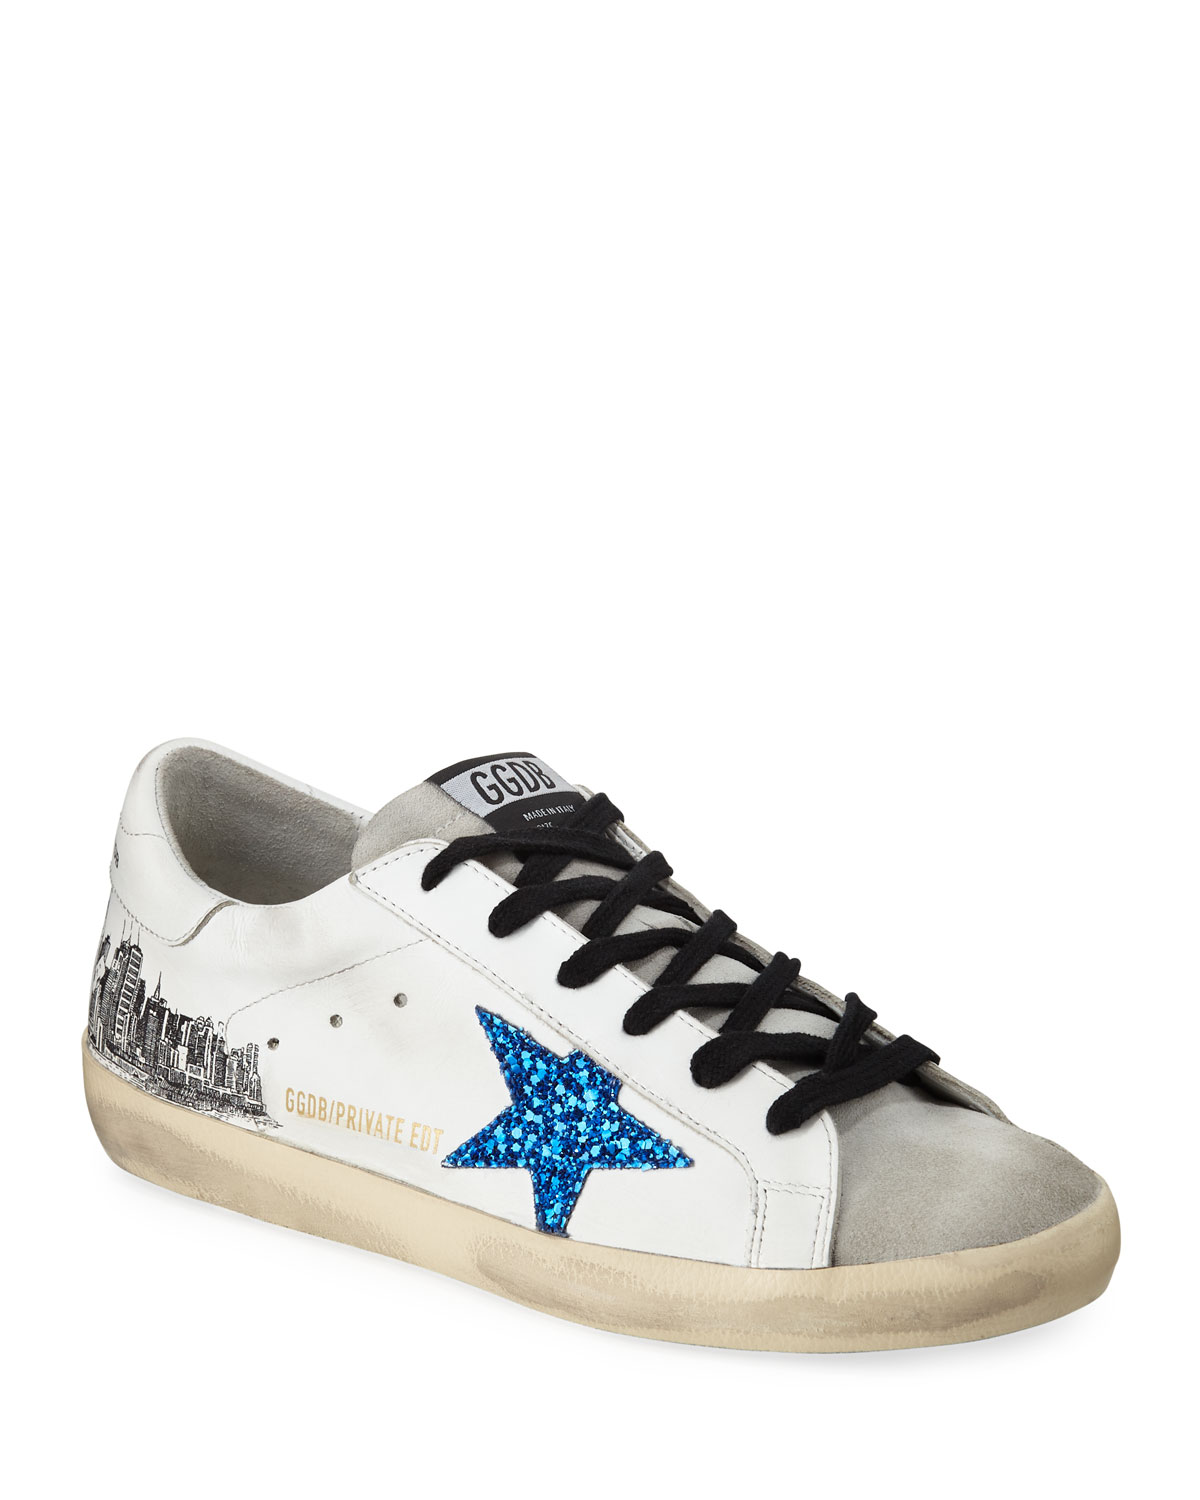 0d9d6f6099d1 Golden Goose Superstar NYC Leather Sneakers